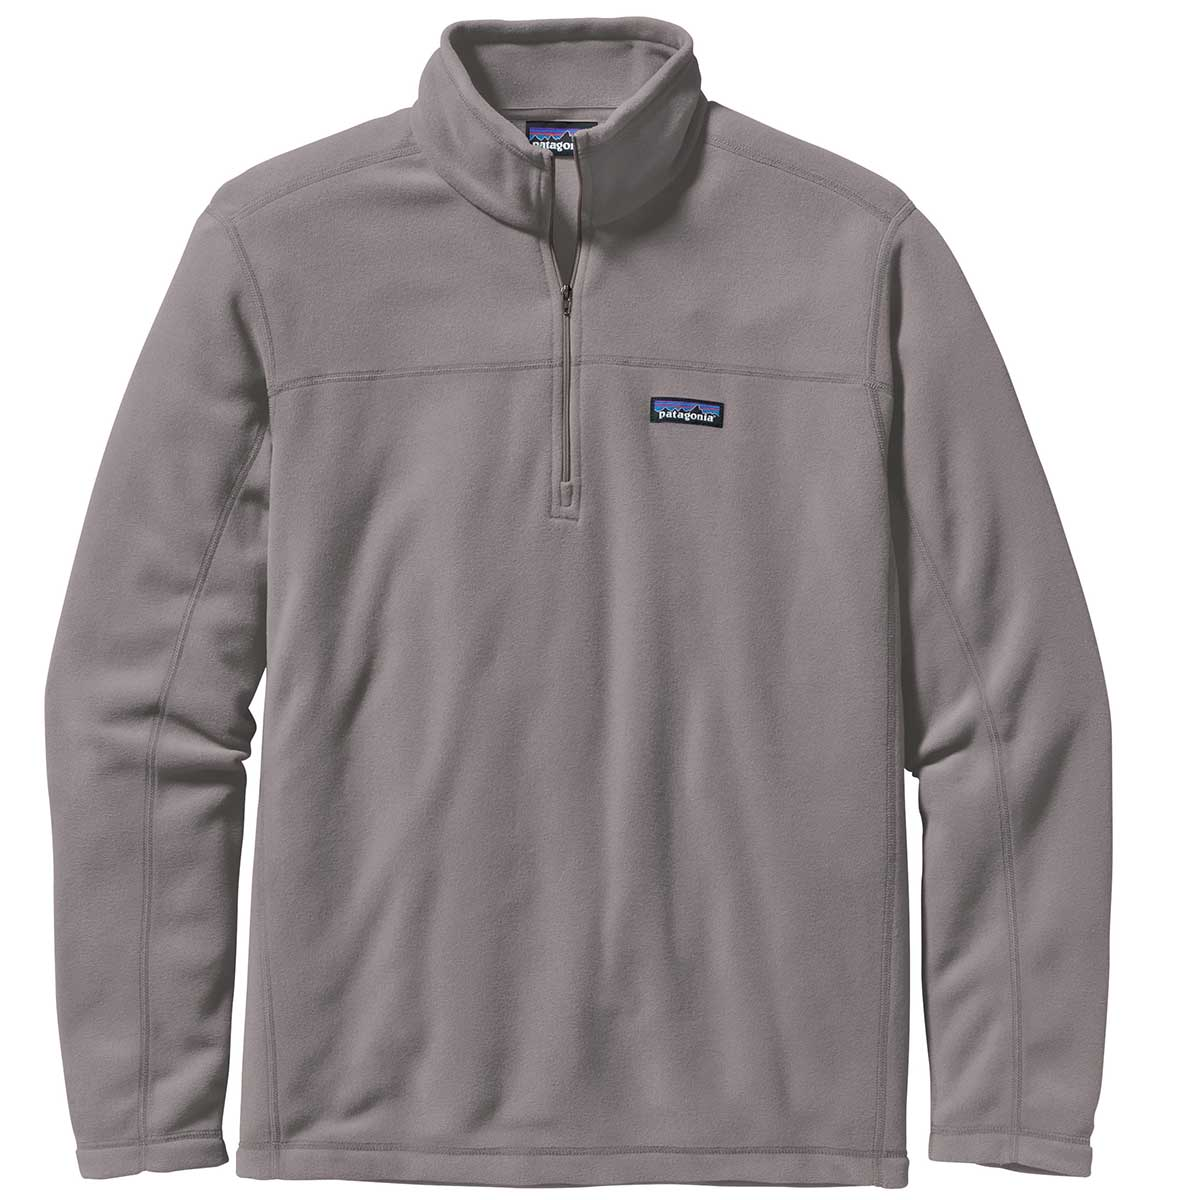 Patagonia men's Micro D Pullover in Feather Grey front view